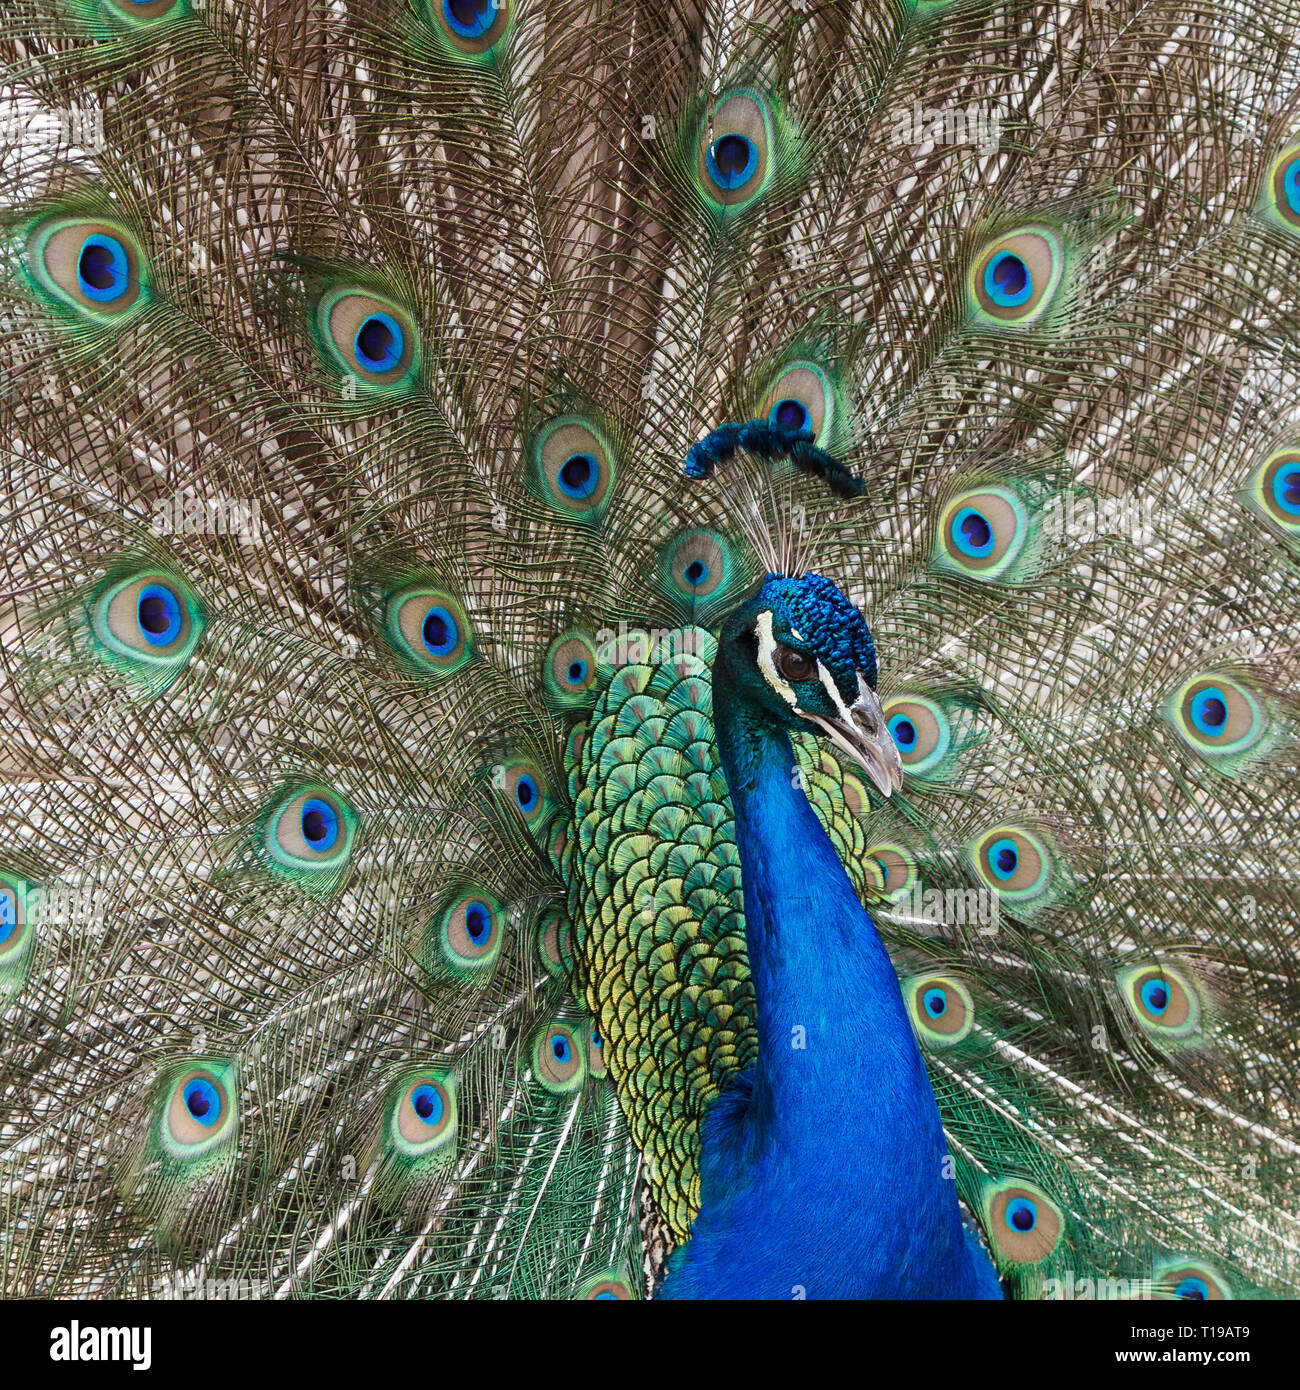 Fanning Peacock - Stock Image